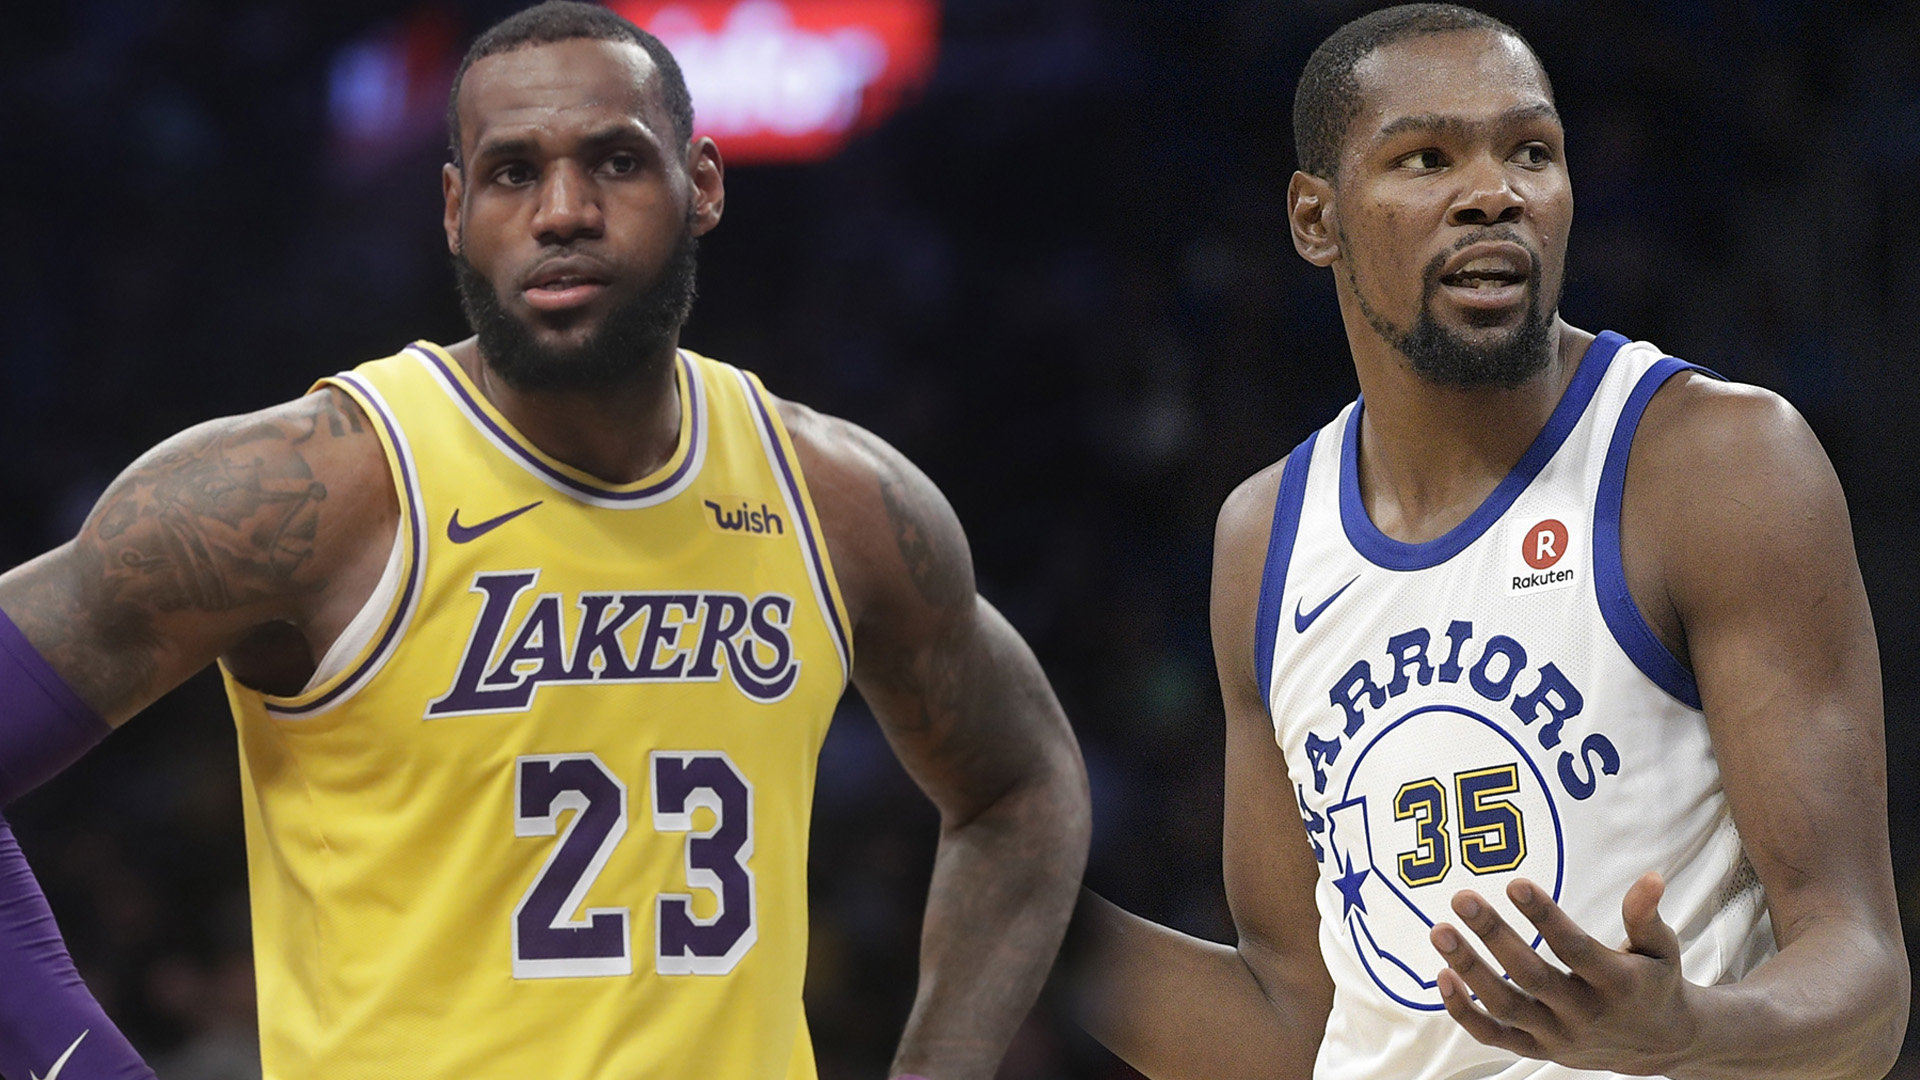 superior quality d2a71 84fef LeBron James, Lakers vs. Golden State Warriors headline ...